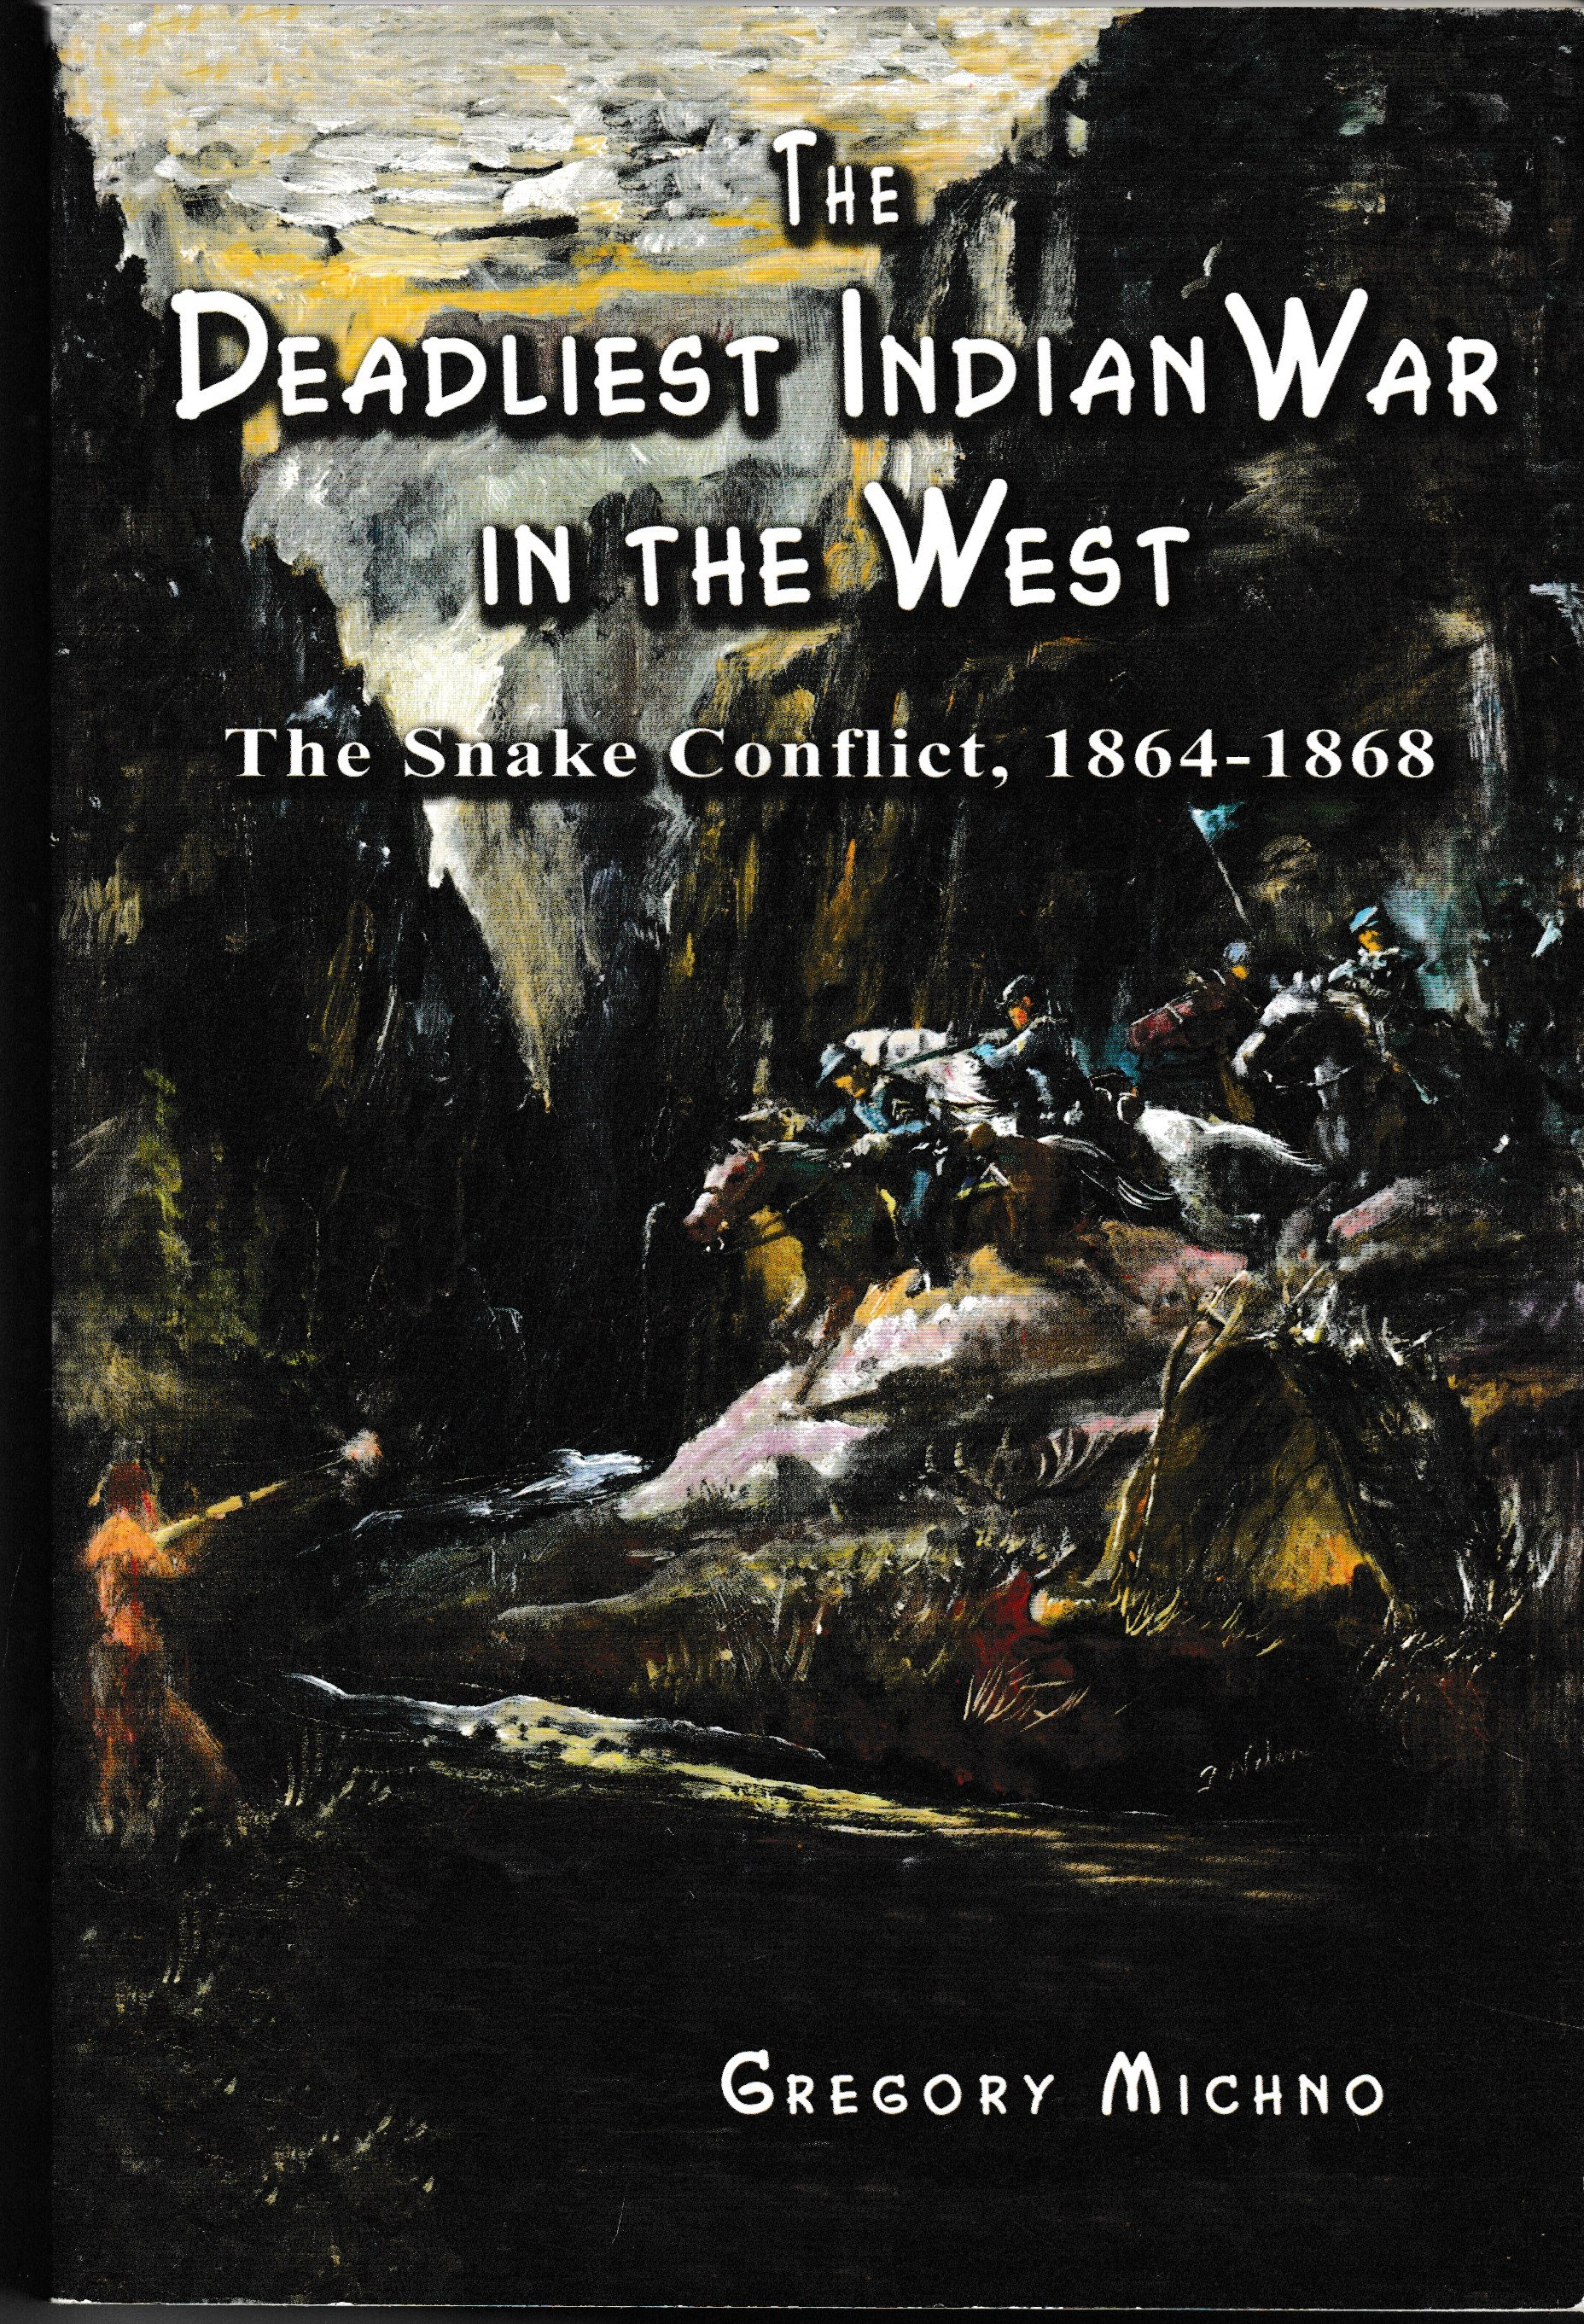 The Deadliest Indian War in the West - Gregory Michno